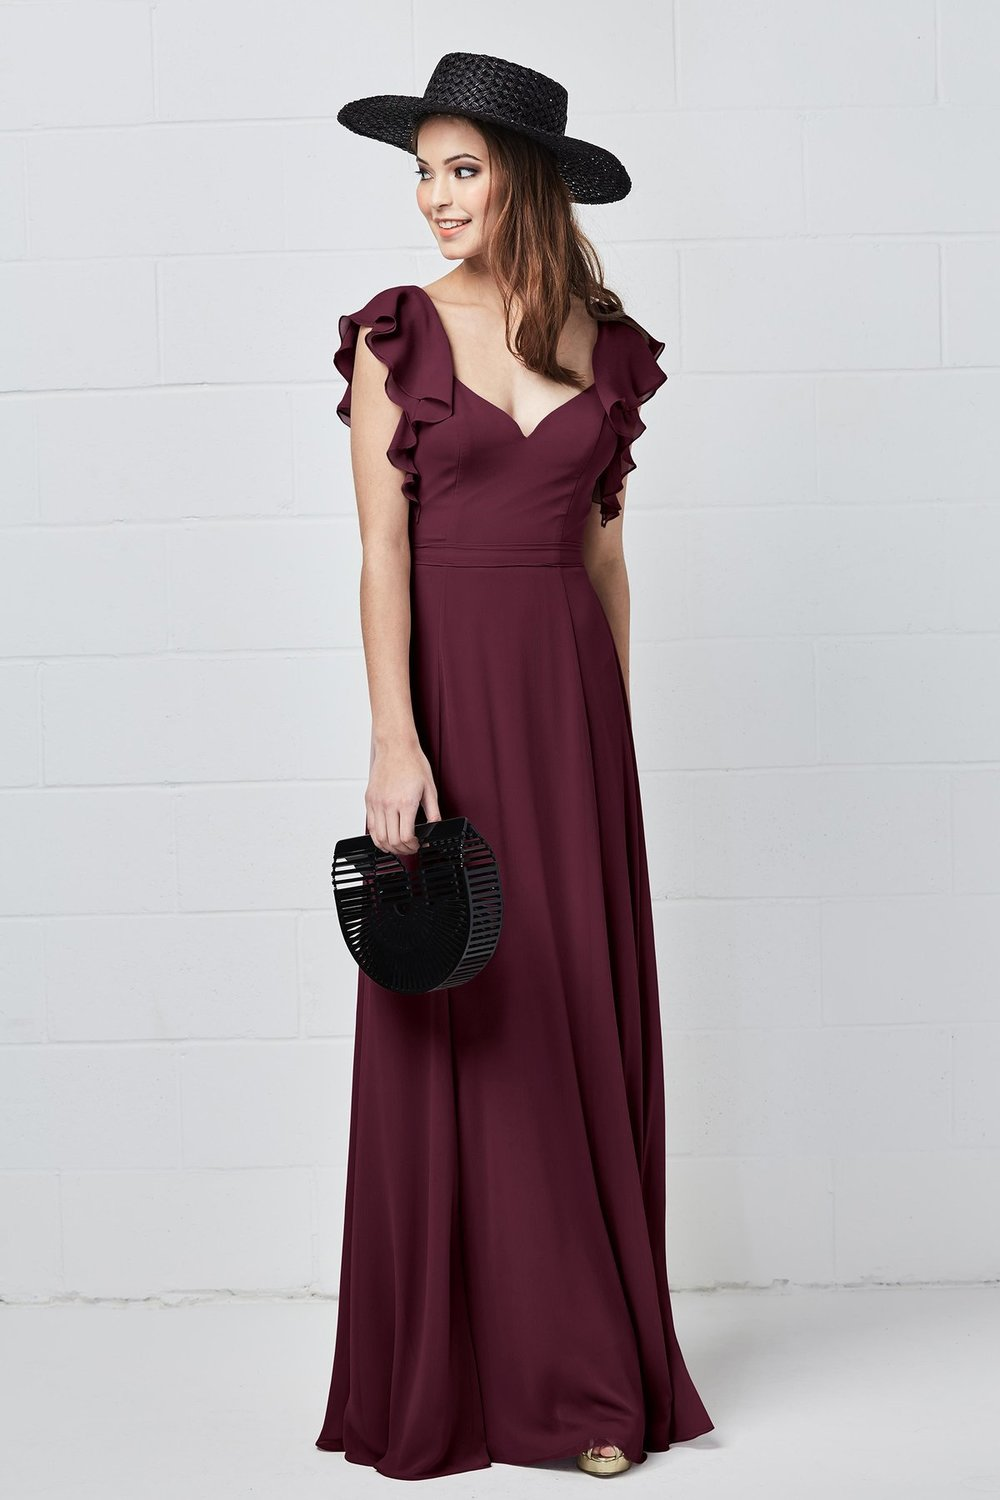 Watters Bridesmaids Style 5502 Pippa in Wine burgundy color luxe chiffon at Gilded Social